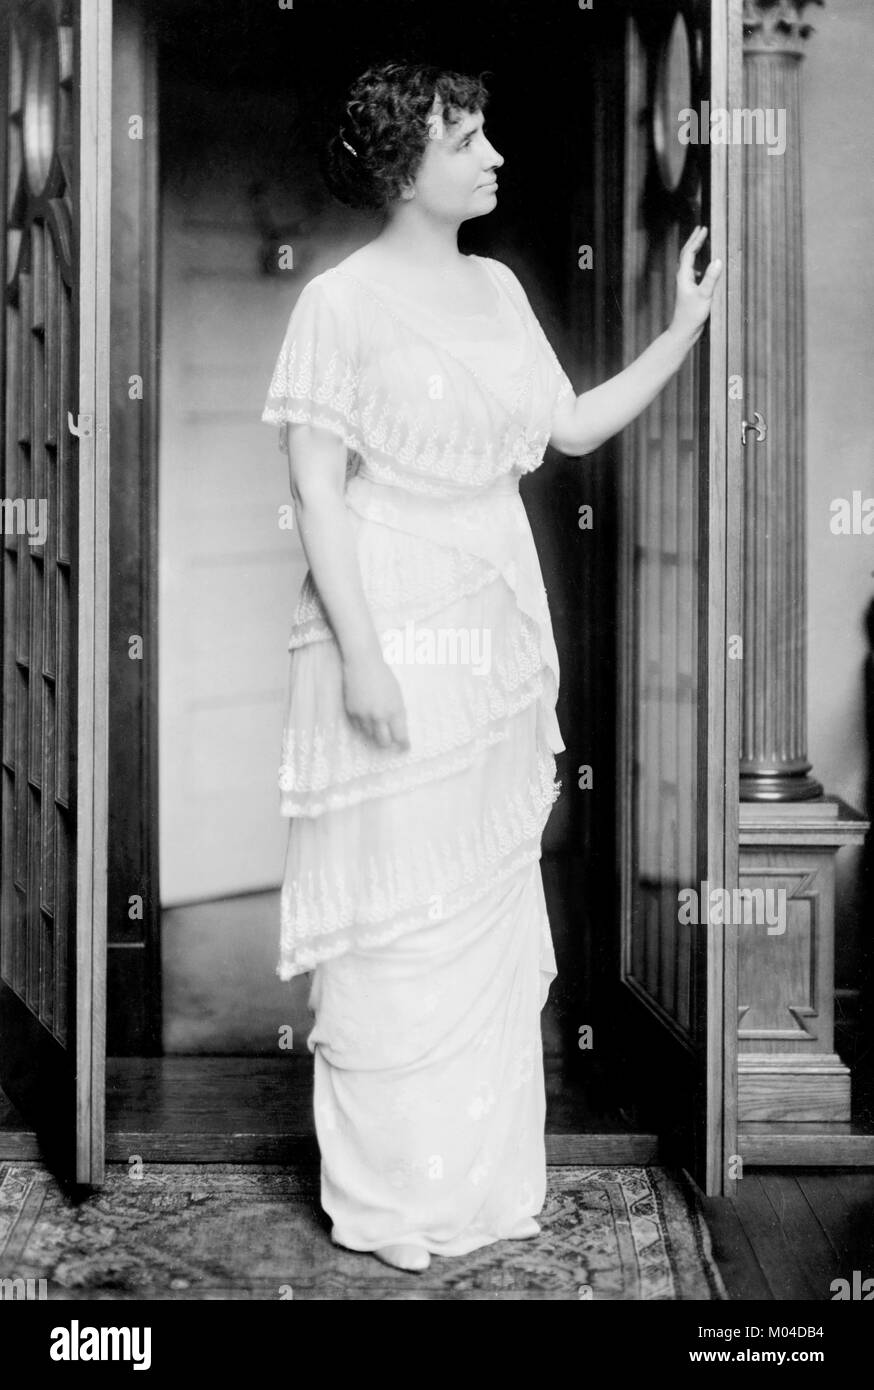 Helen Keller (1880-1968). Phototgraph of the deaf-blind author and political activist by Gerhard Sisters, c.1914 - Stock Image